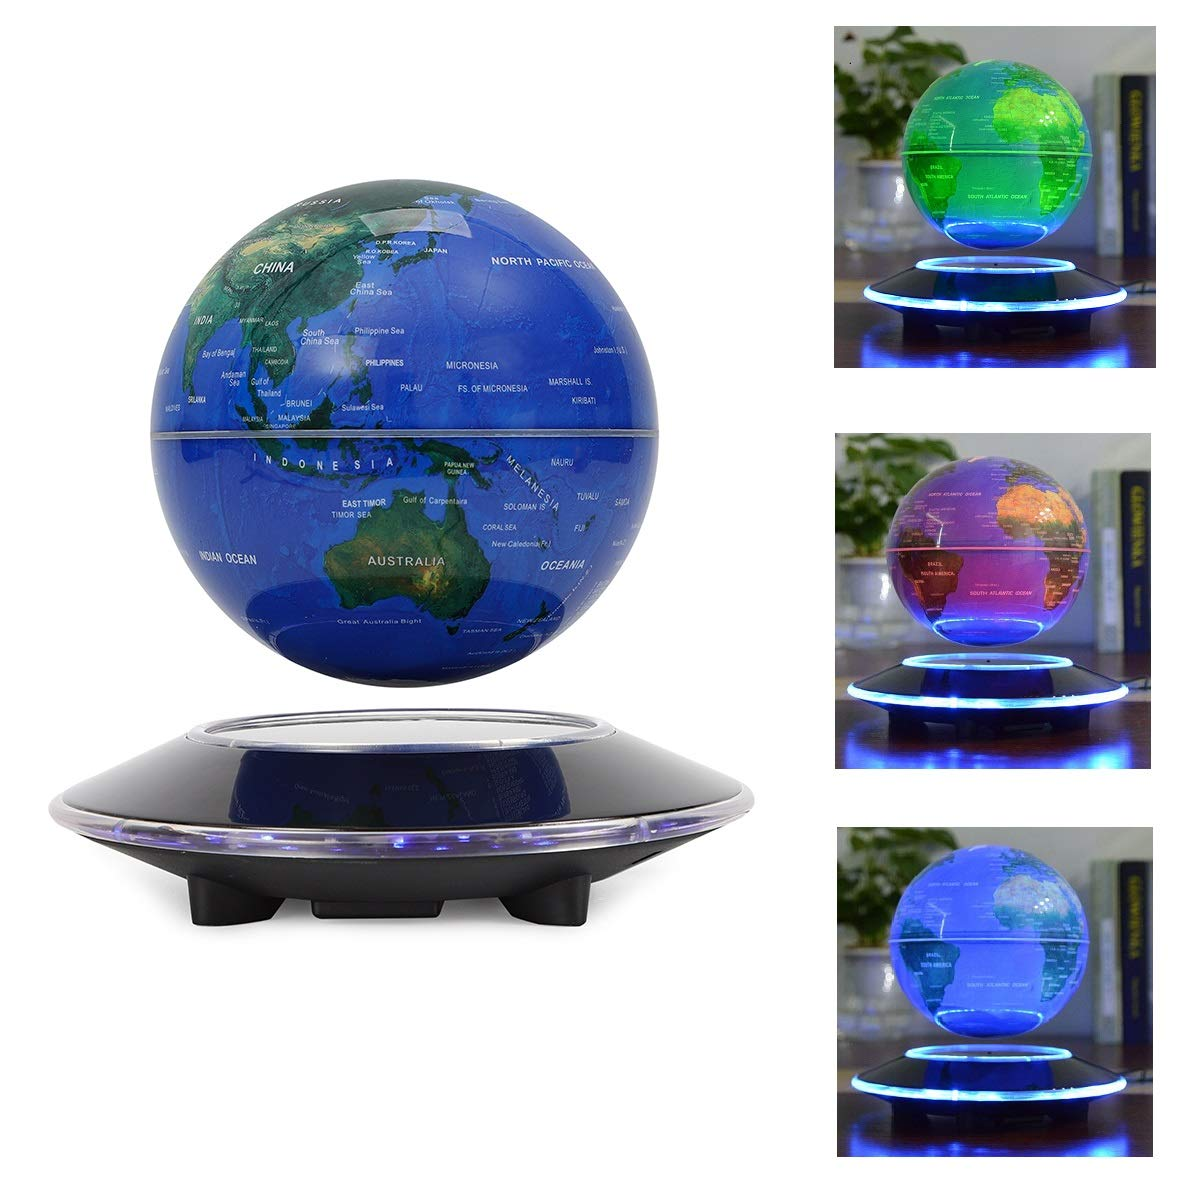 WUPYI 6'' Magnetic Levitation Floating Globe Anti Gravity Rotating World Map with LED Light 7 Colors Display Floating Globe for Children Educational Gift Home Office Desk Decoration (Colorful Light) by WUPYI